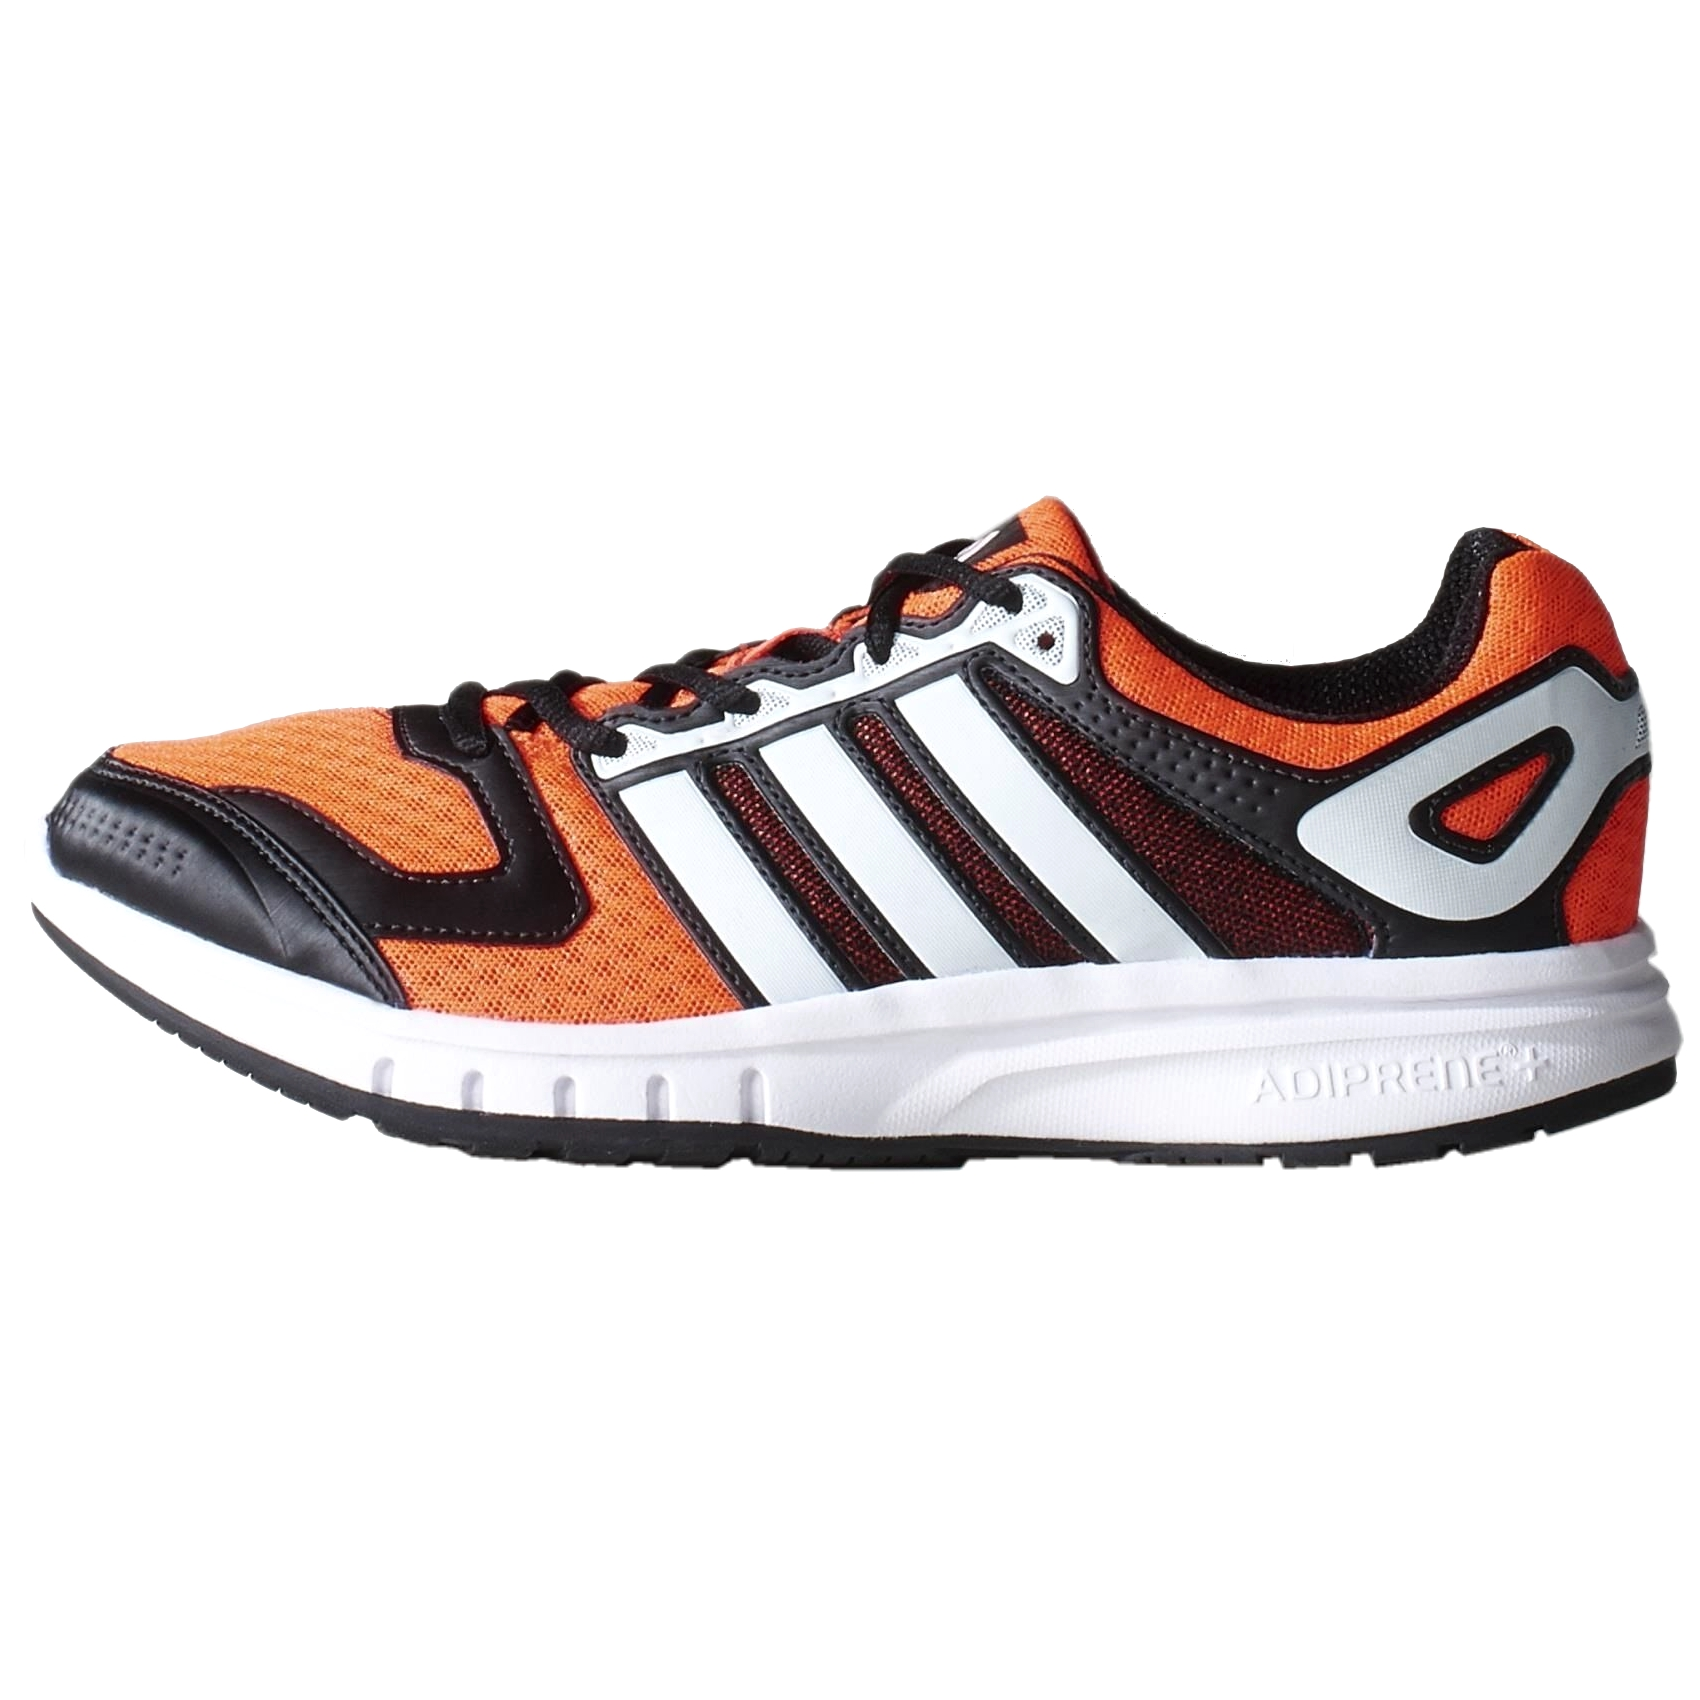 adidas galaxy schuhe laufschuhe joggingschuhe sportschuhe fitness herren ebay. Black Bedroom Furniture Sets. Home Design Ideas